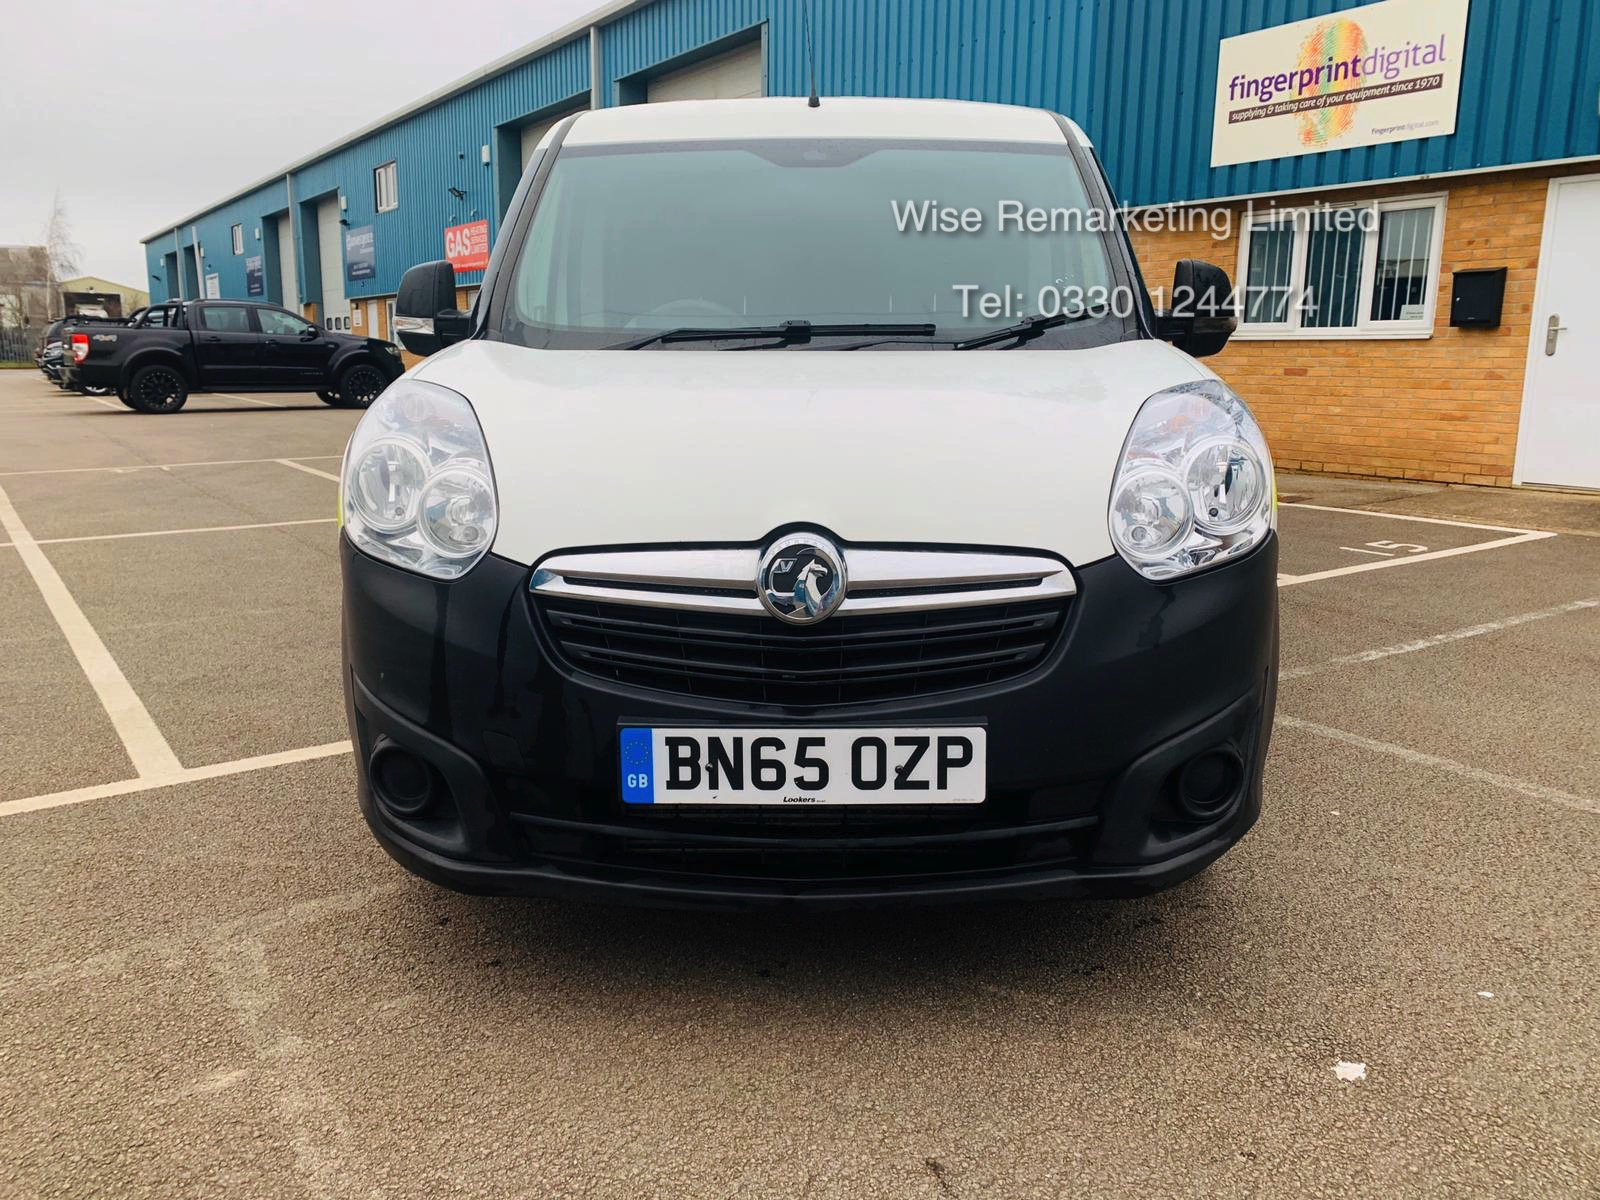 Vauxhall Combo 2300 1.6 CDTI Long - 2016 Model - 1 Keeper From New - Twin Doors - Ply Lined - Image 5 of 21